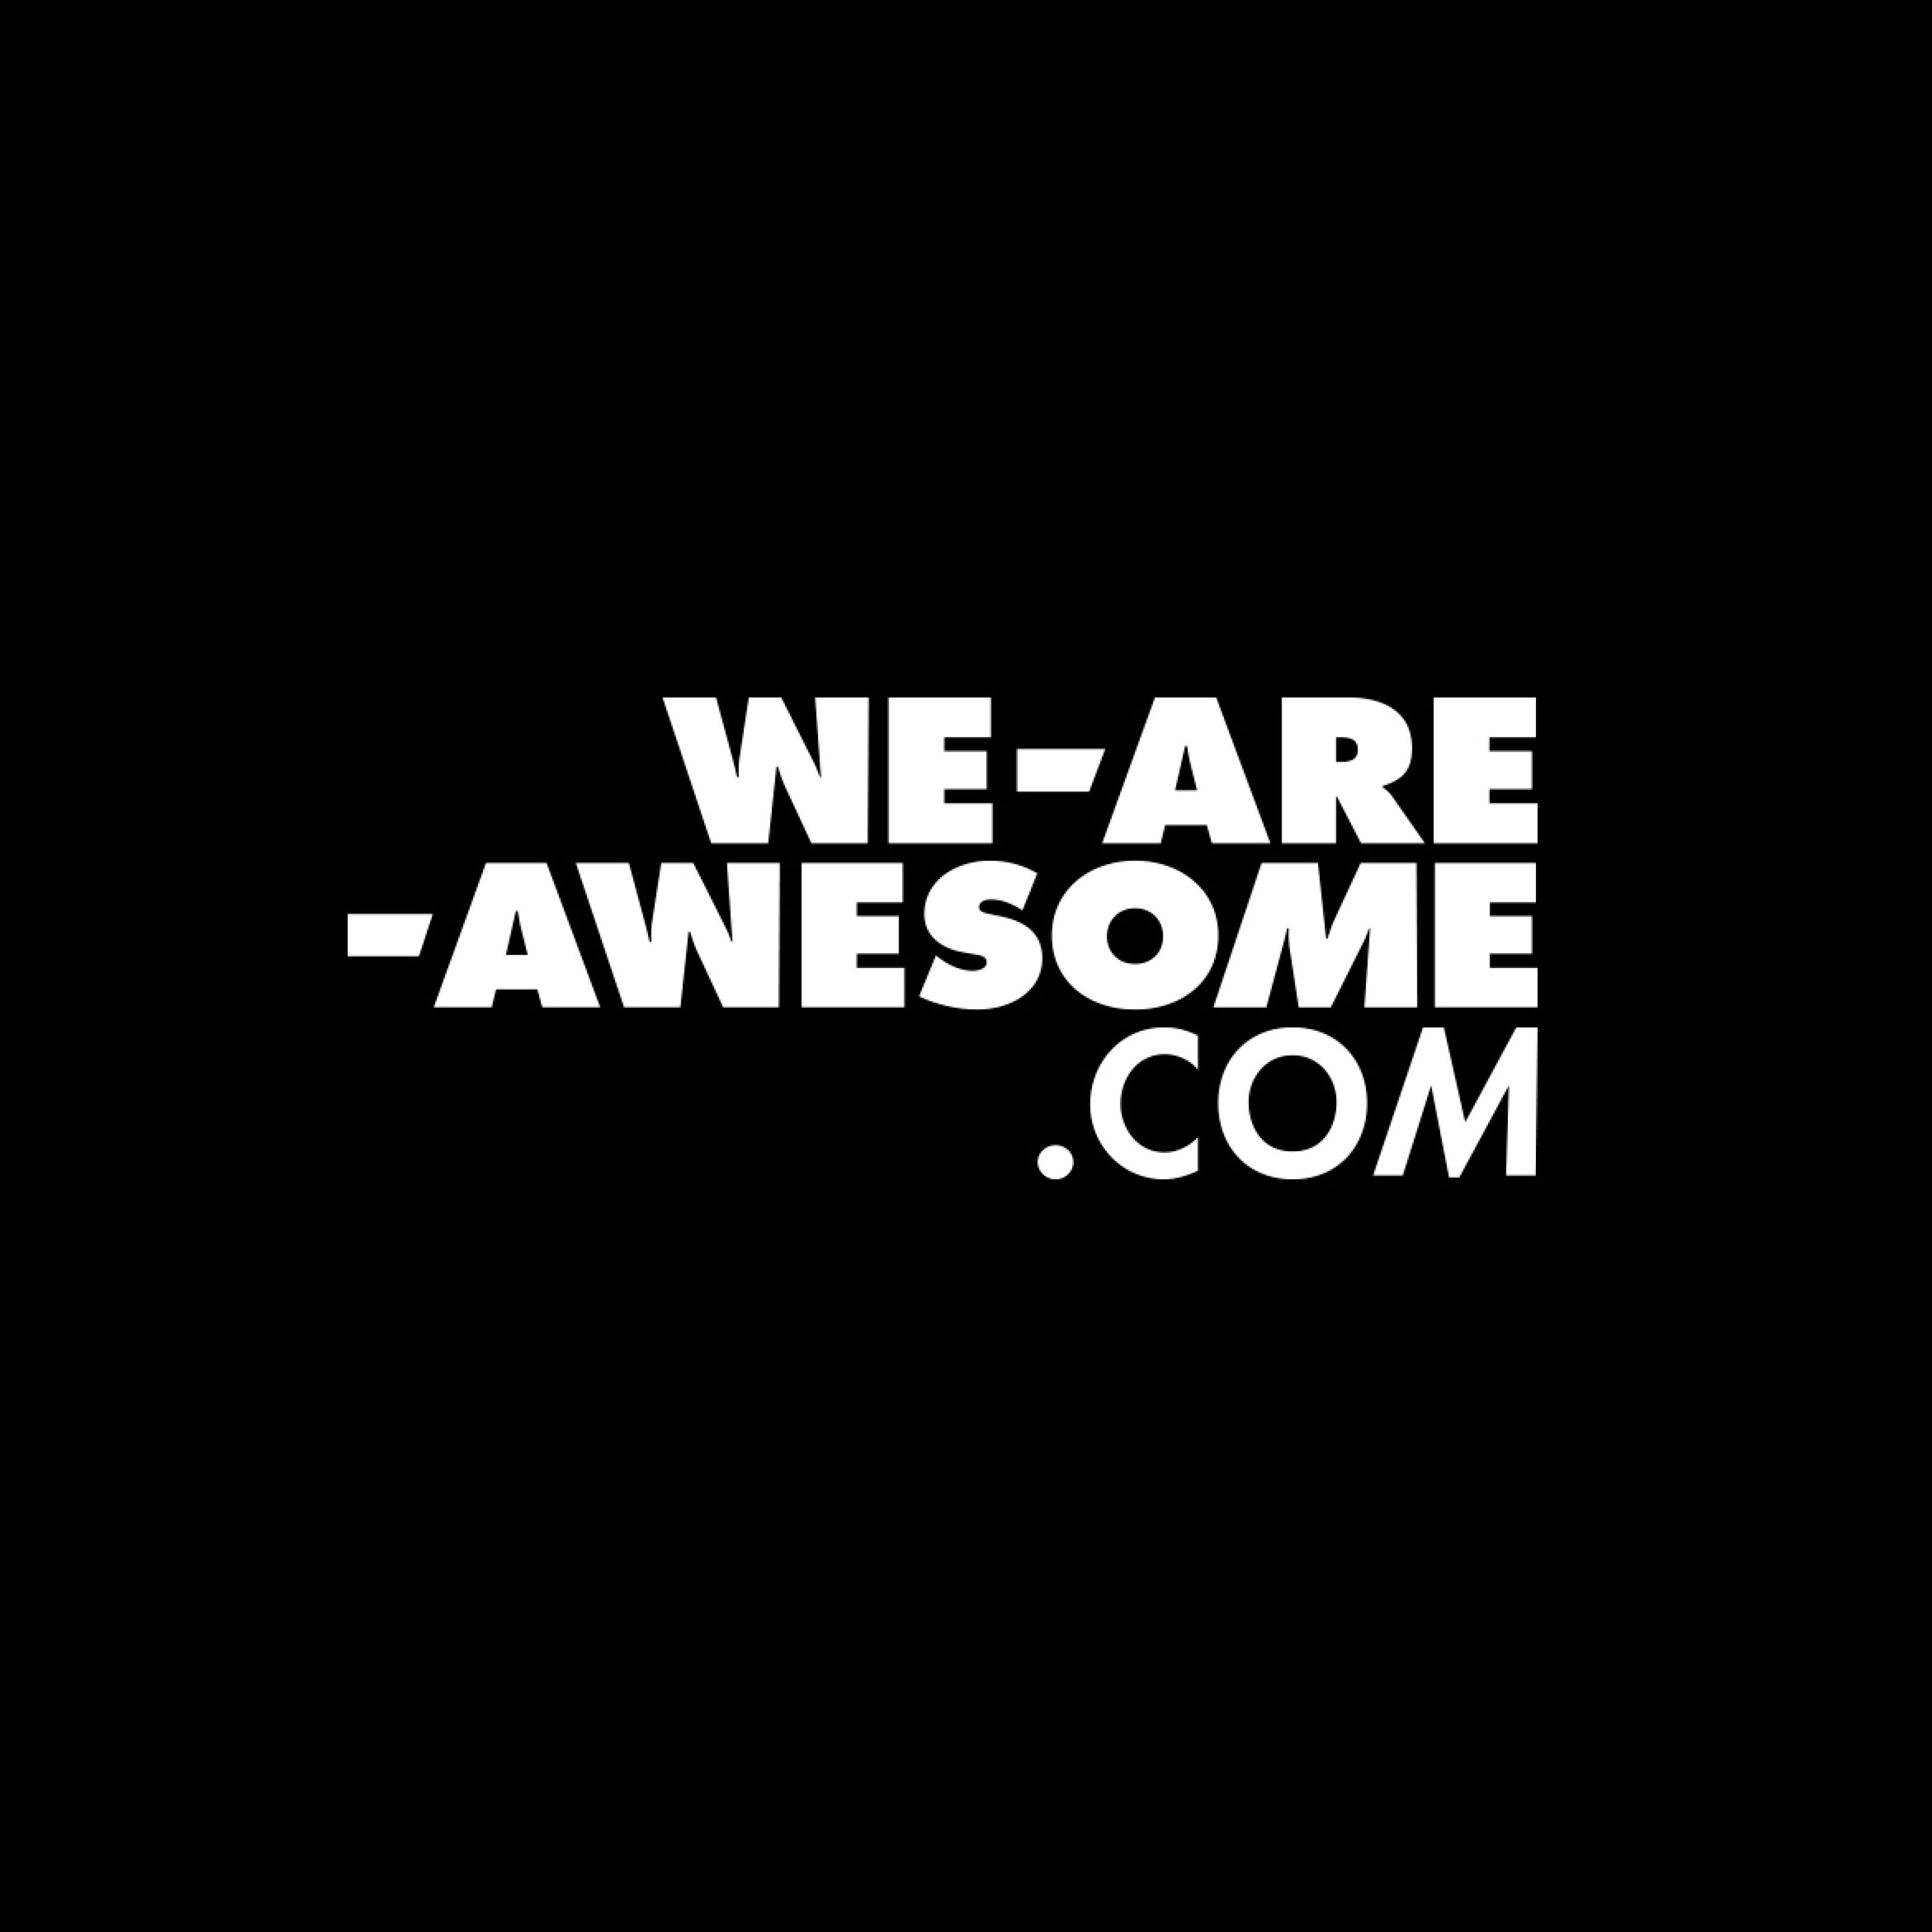 We-are-awesome